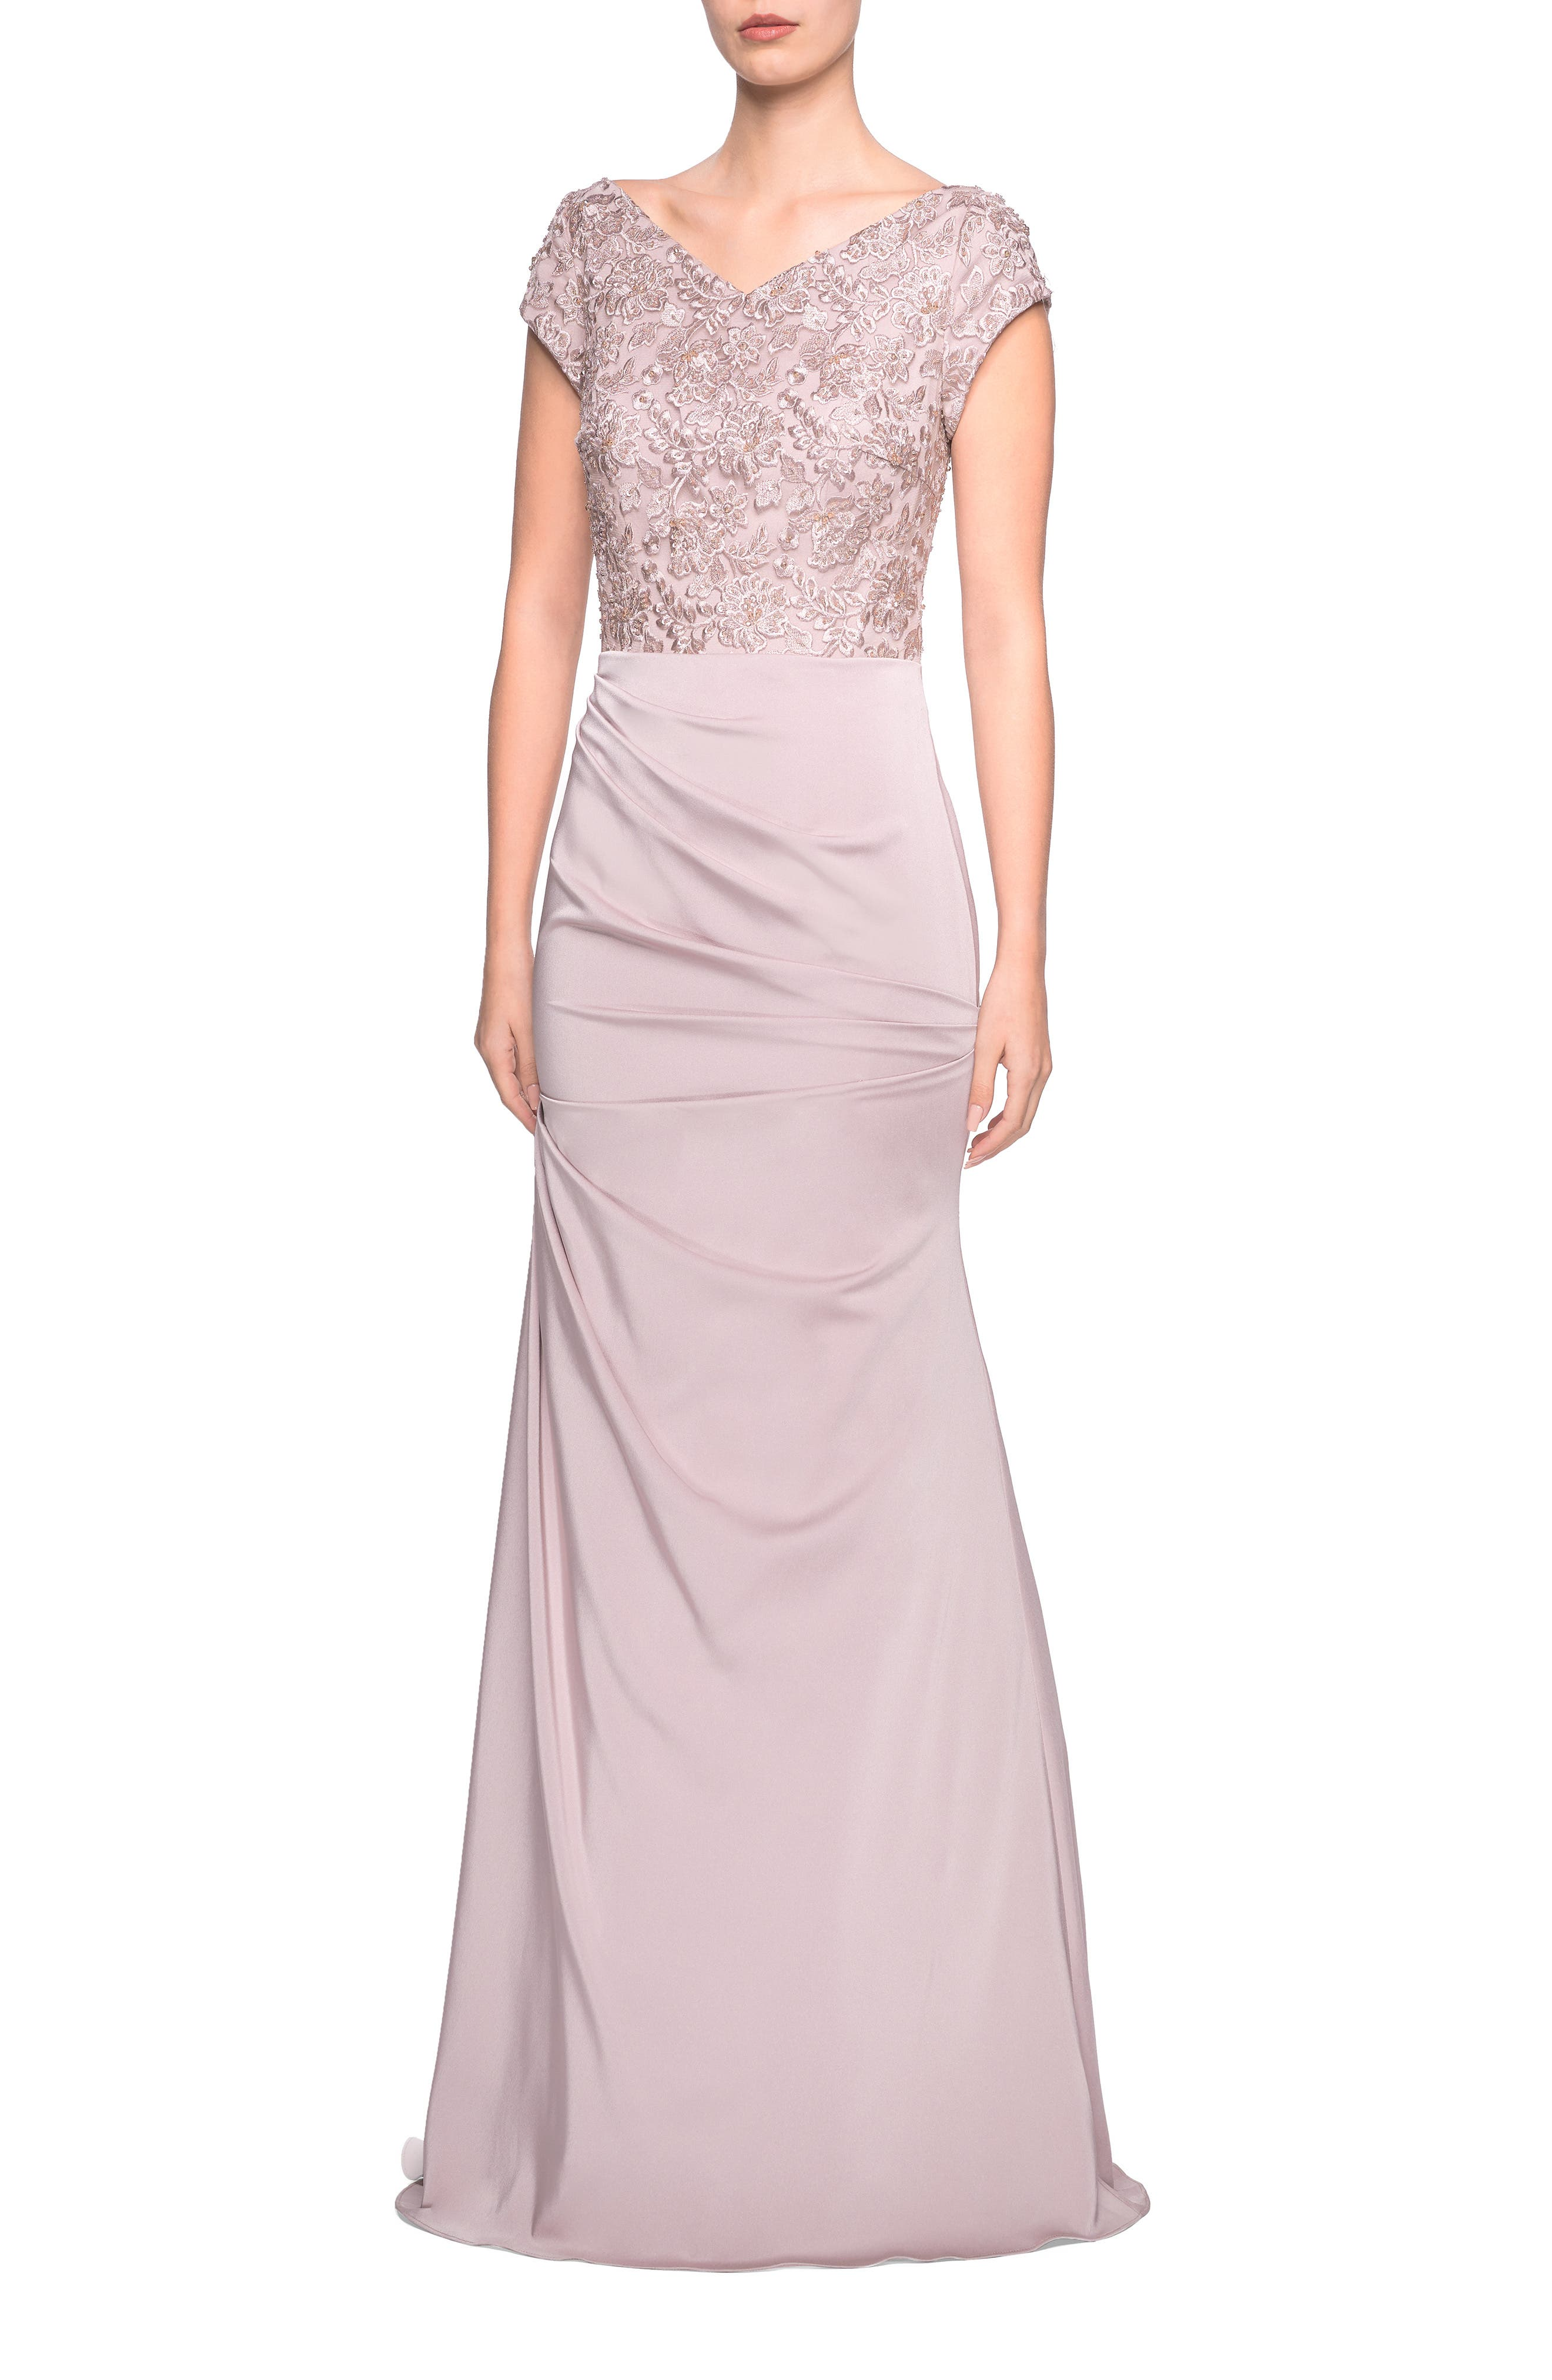 La Femme Embroidered Bodice Satin Evening Dress, 8 (similar to 18W-20W) - Beige